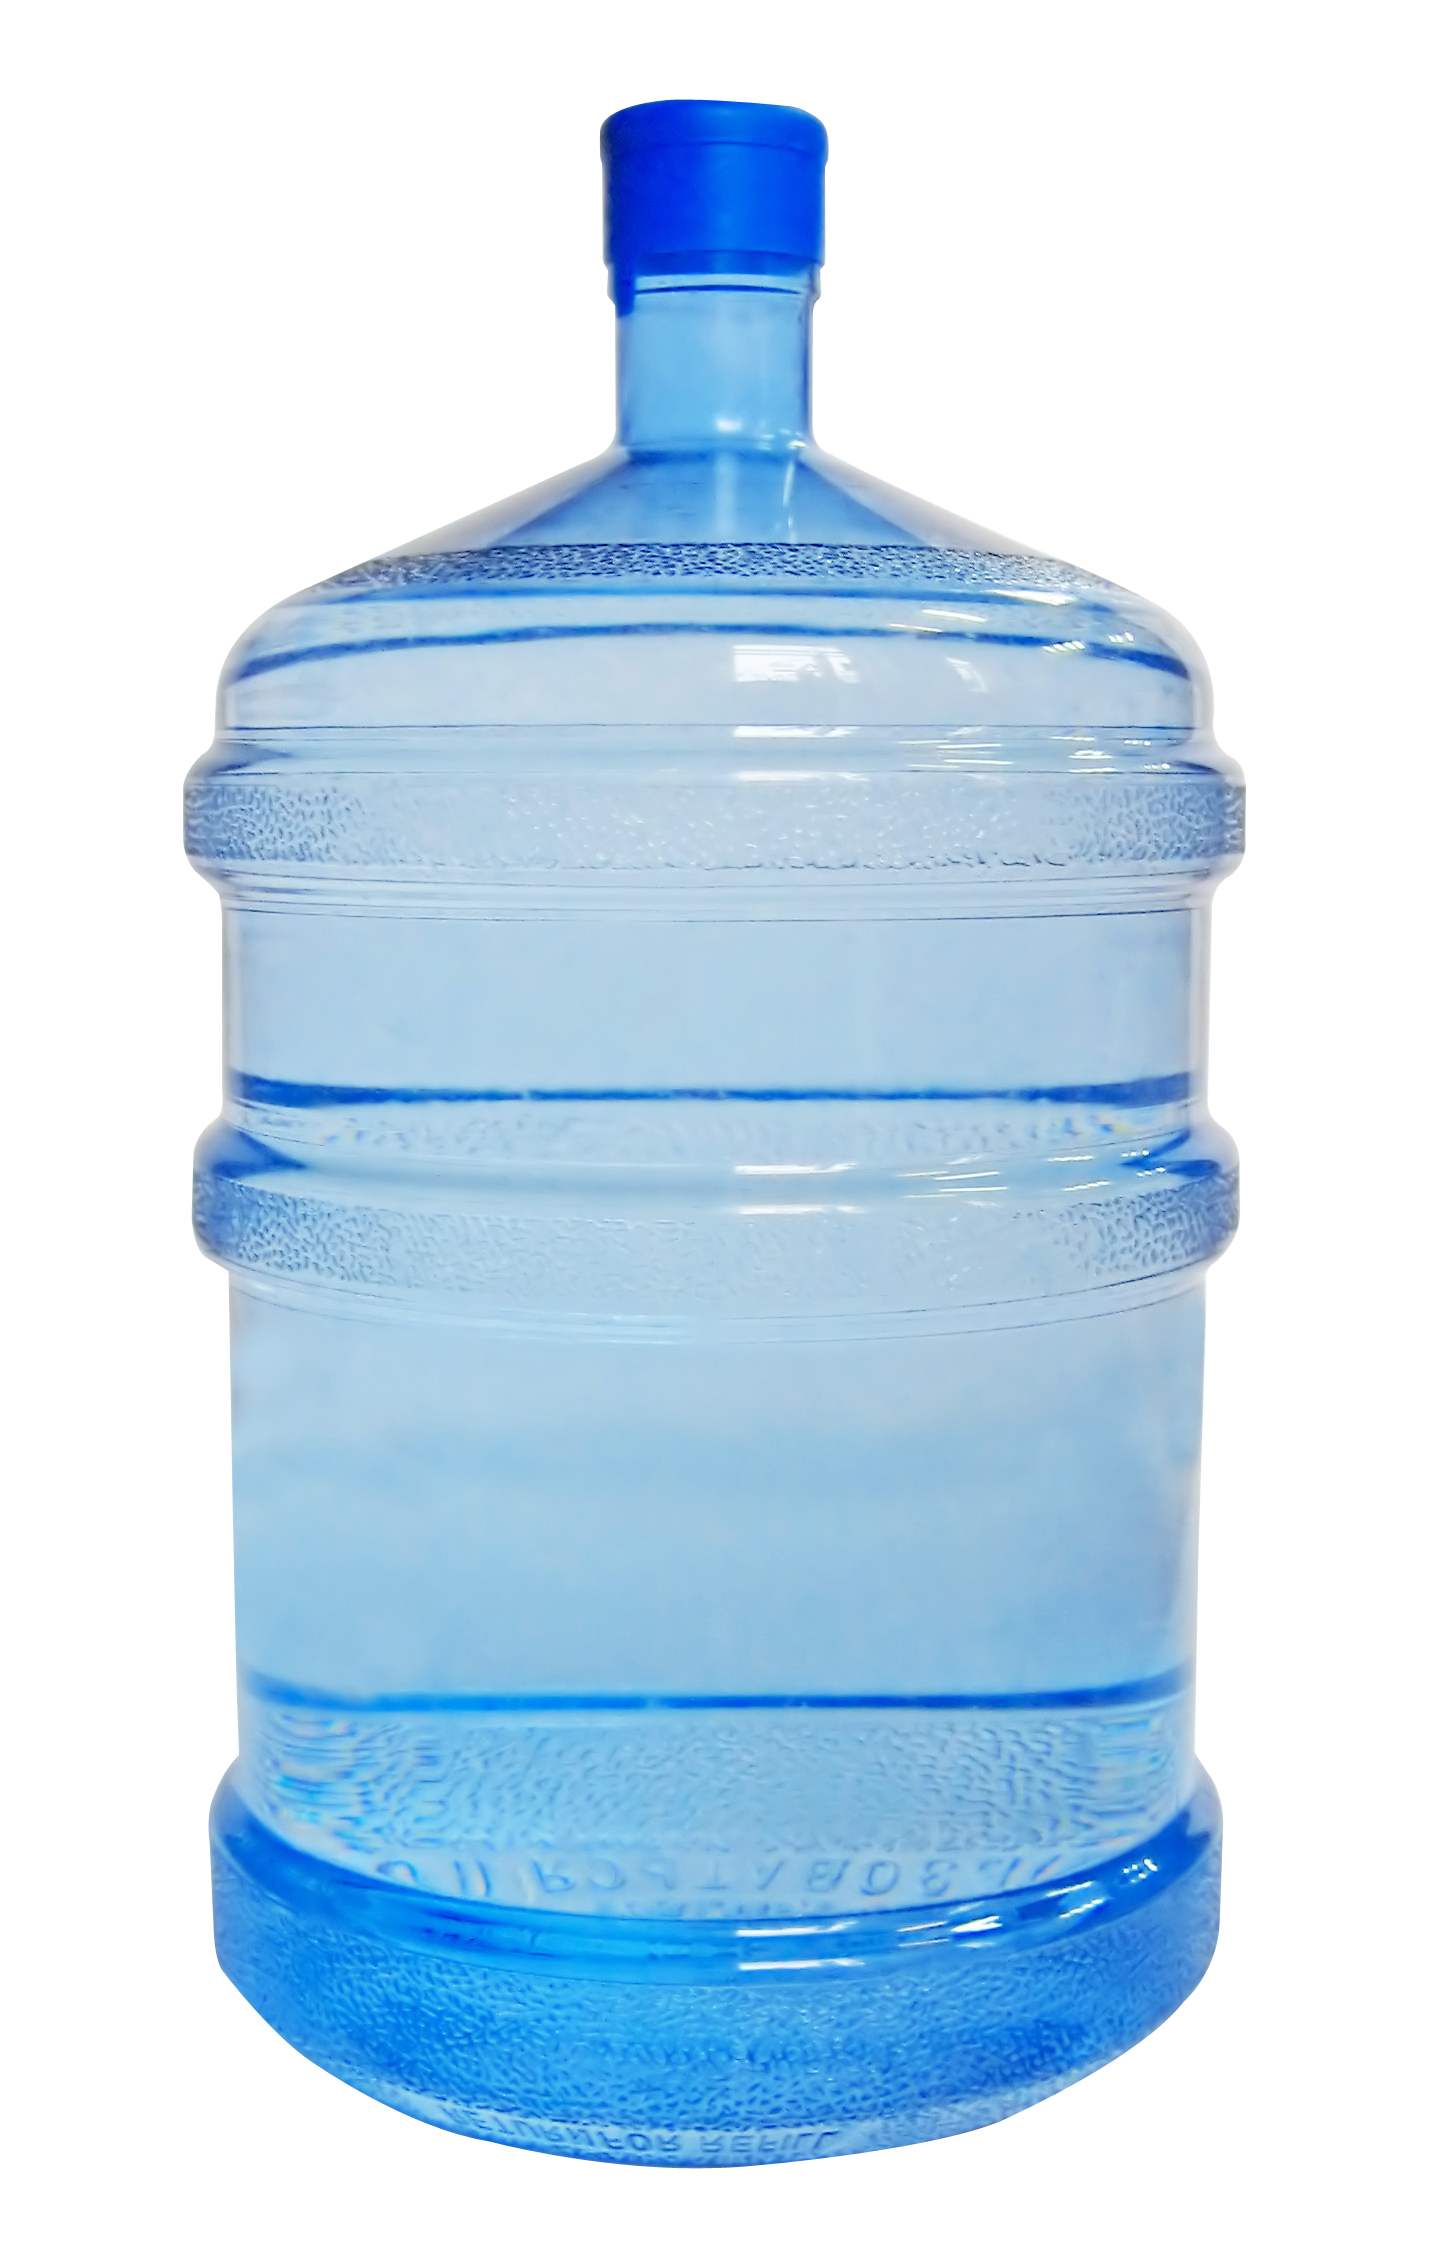 water bottle, water can png transparent image pngpix #18658